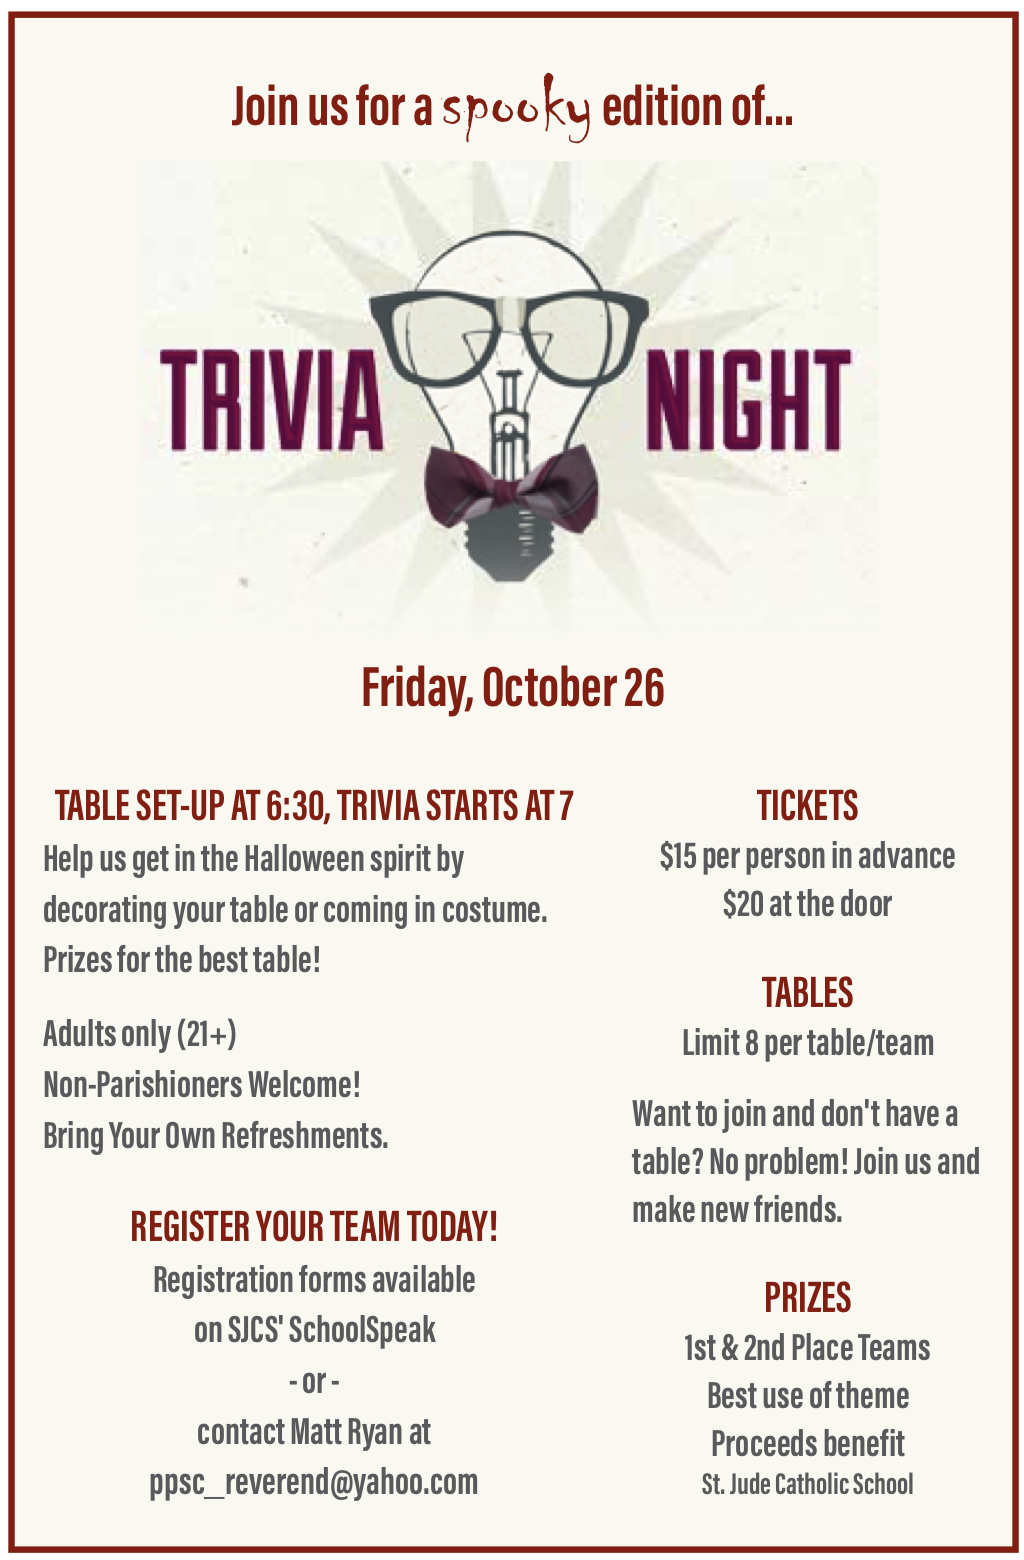 Trivia night info.png